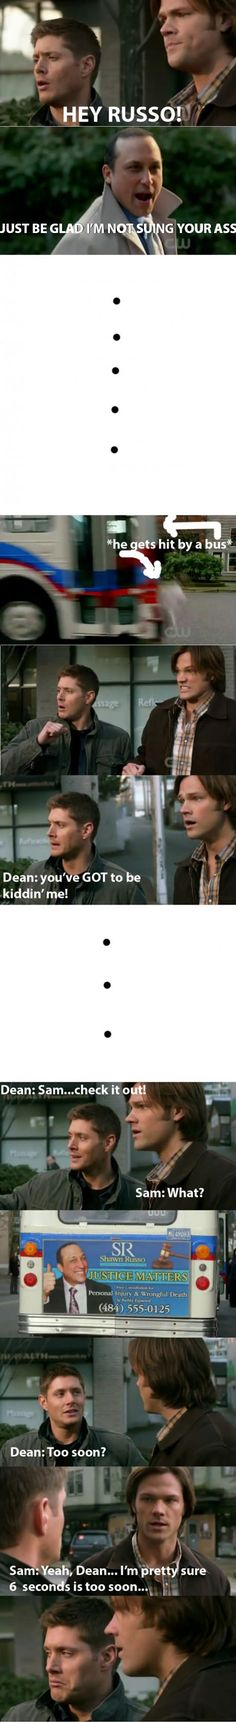 Too soon? Come on Dean!